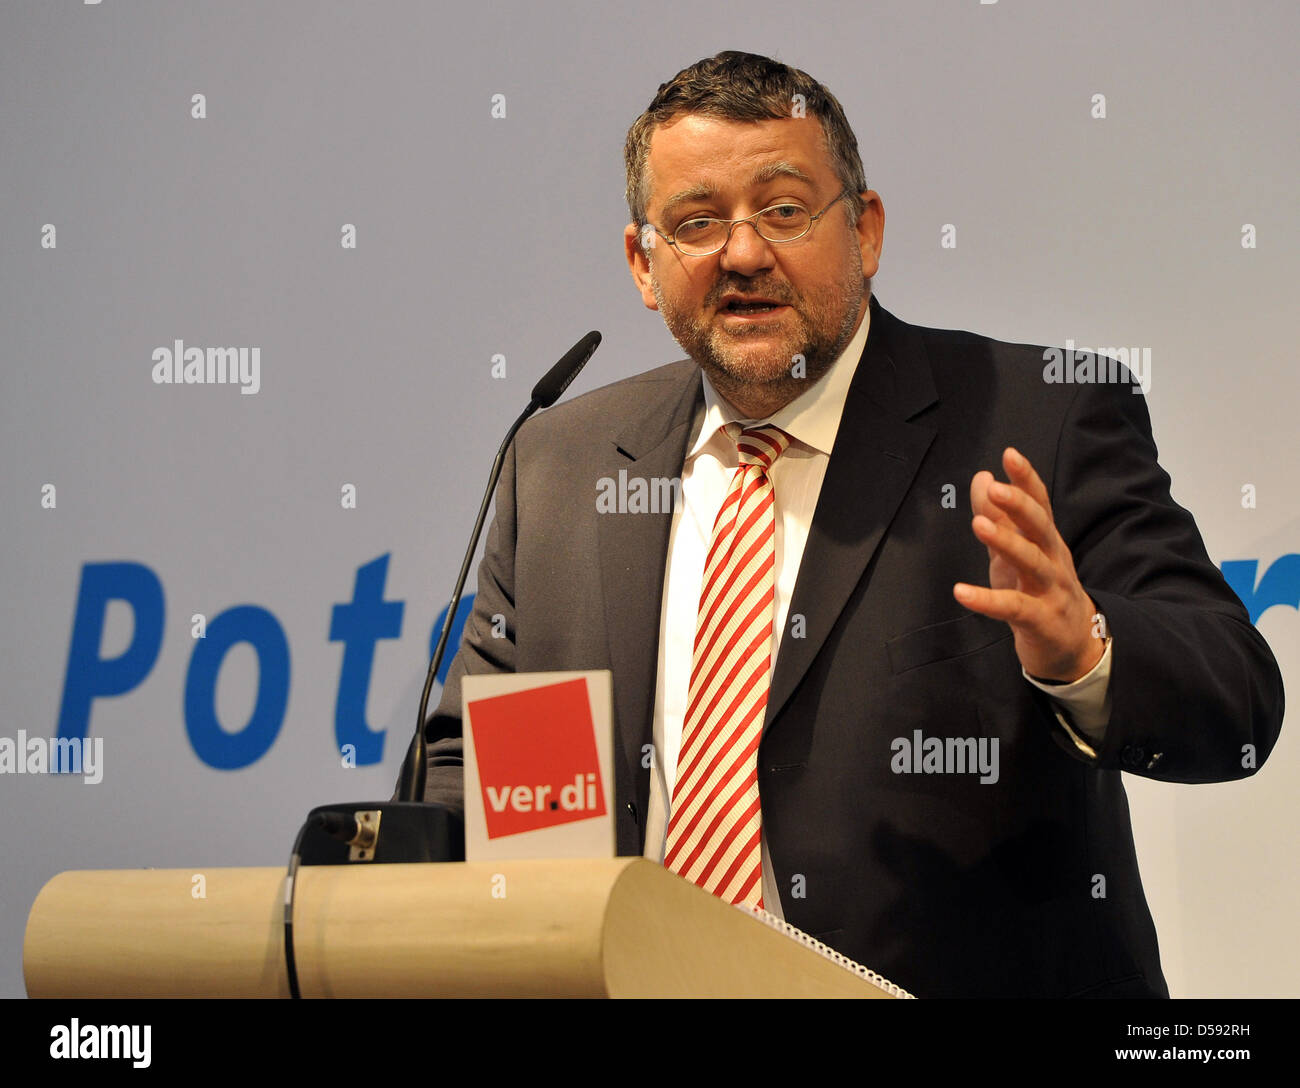 Brandenburg's Interiour Minister Rainer Speer speaks at the 8th Potsdam Forum for Executives in the public services - Stock Image